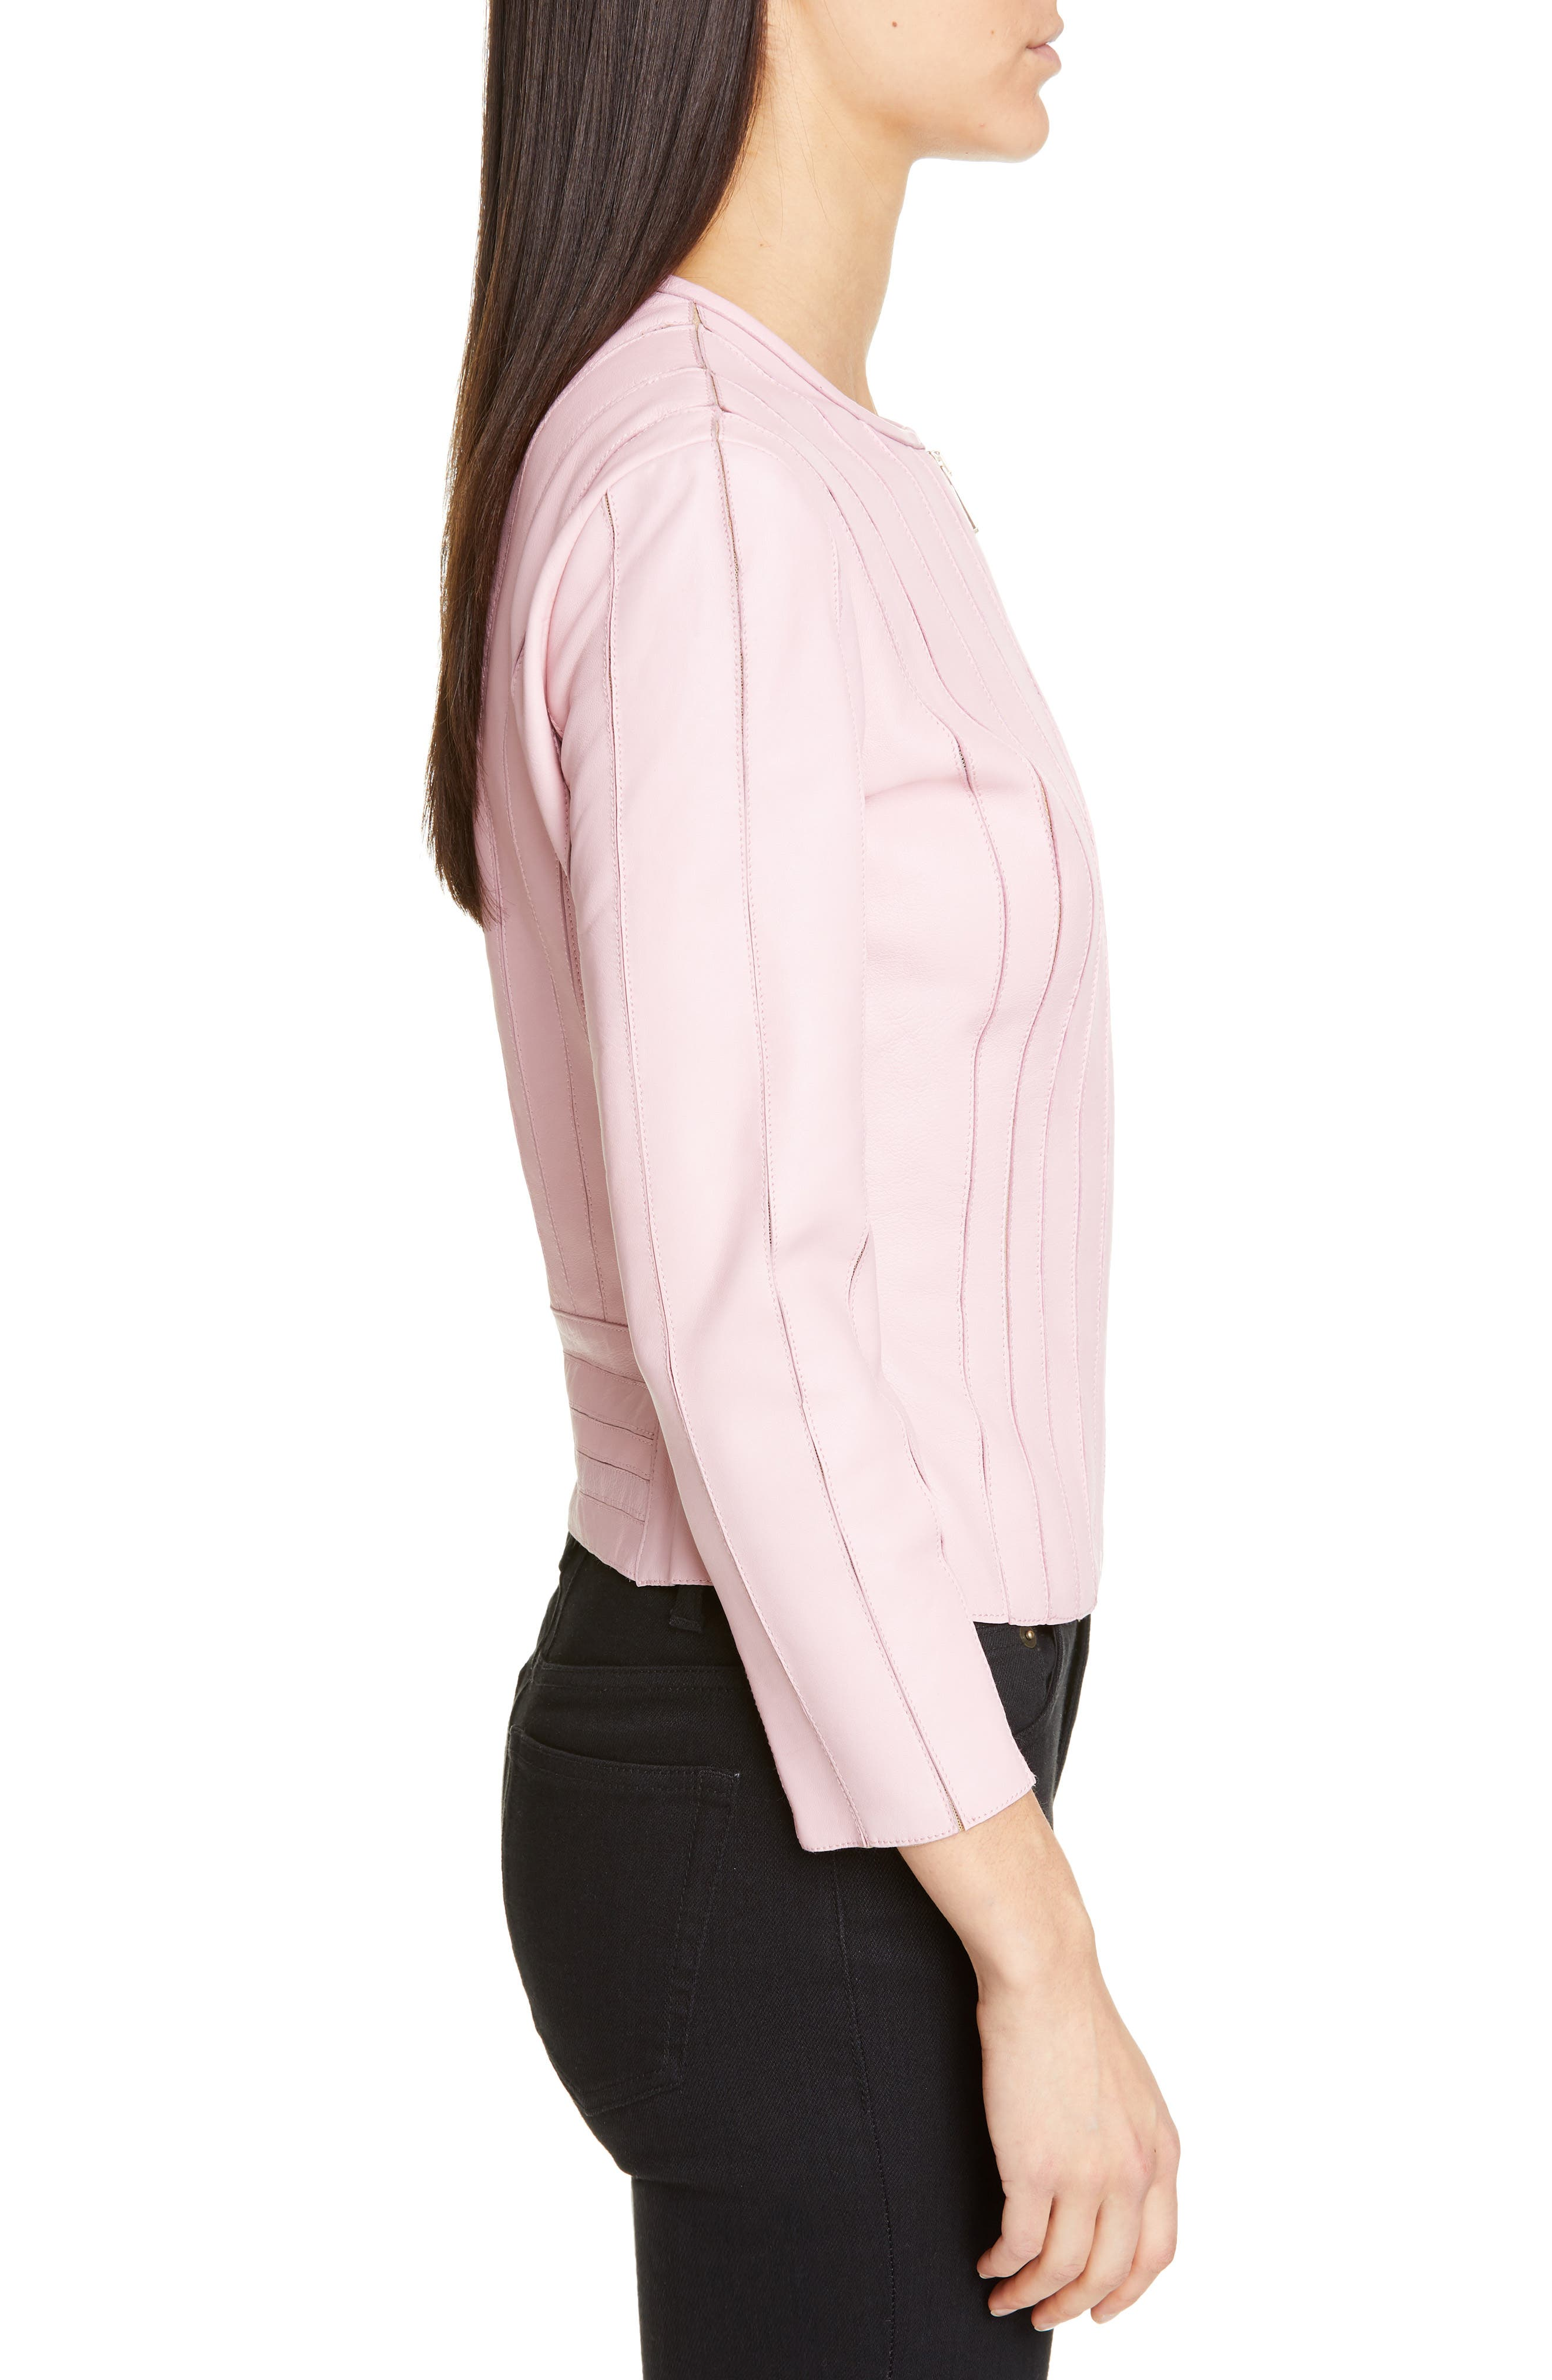 VERSACE COLLECTION, Mesh Rib Leather Jacket, Alternate thumbnail 3, color, PASTEL ROSE